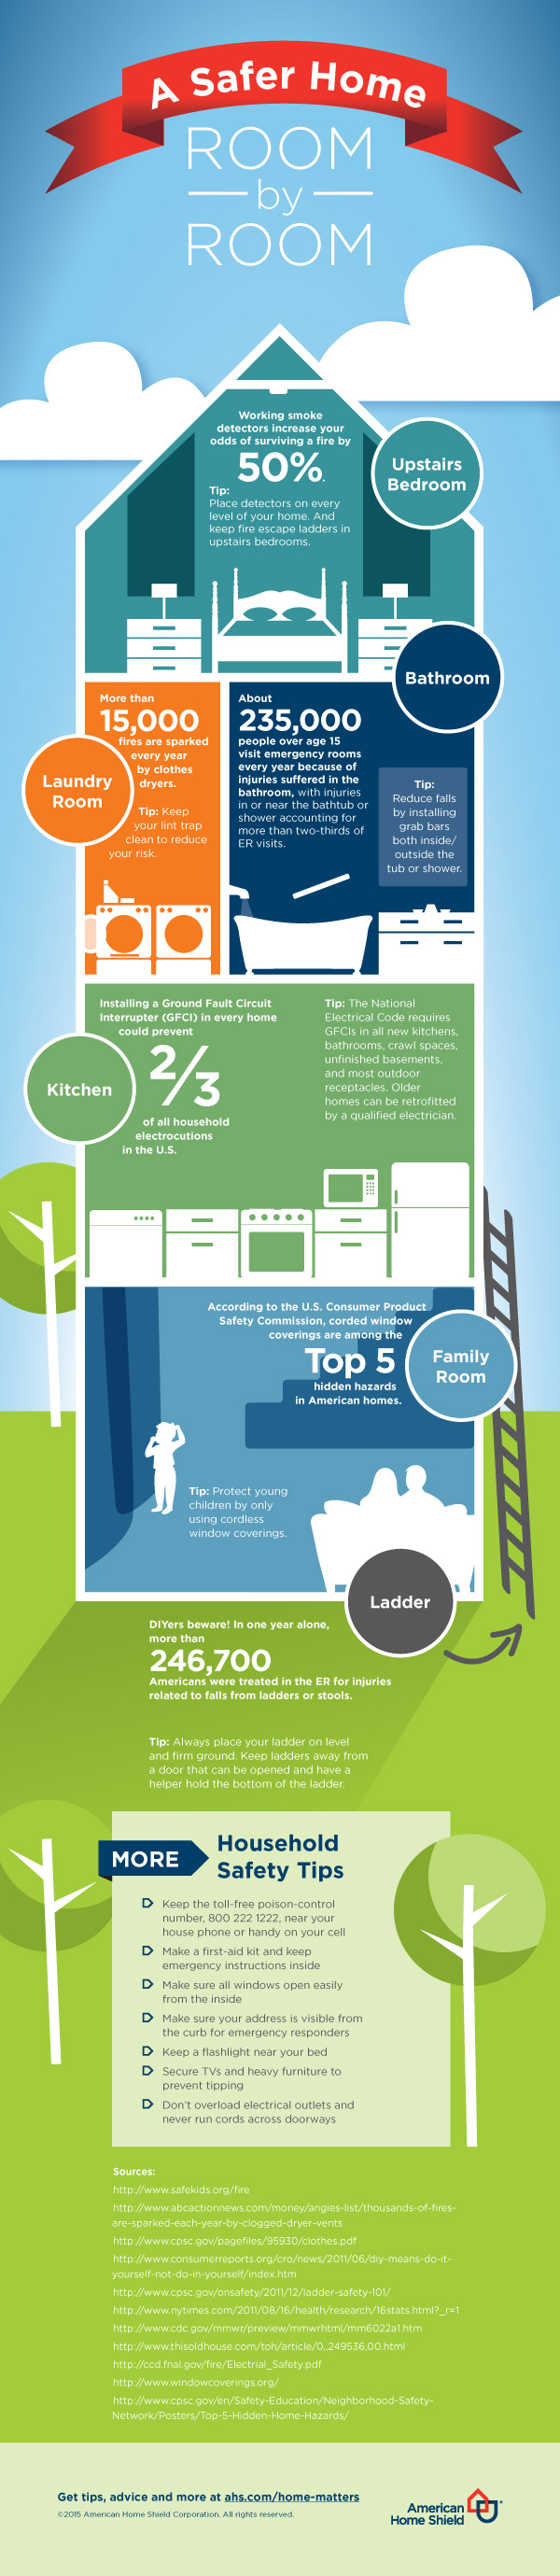 A Safer Home, Room-by-Room #infographic